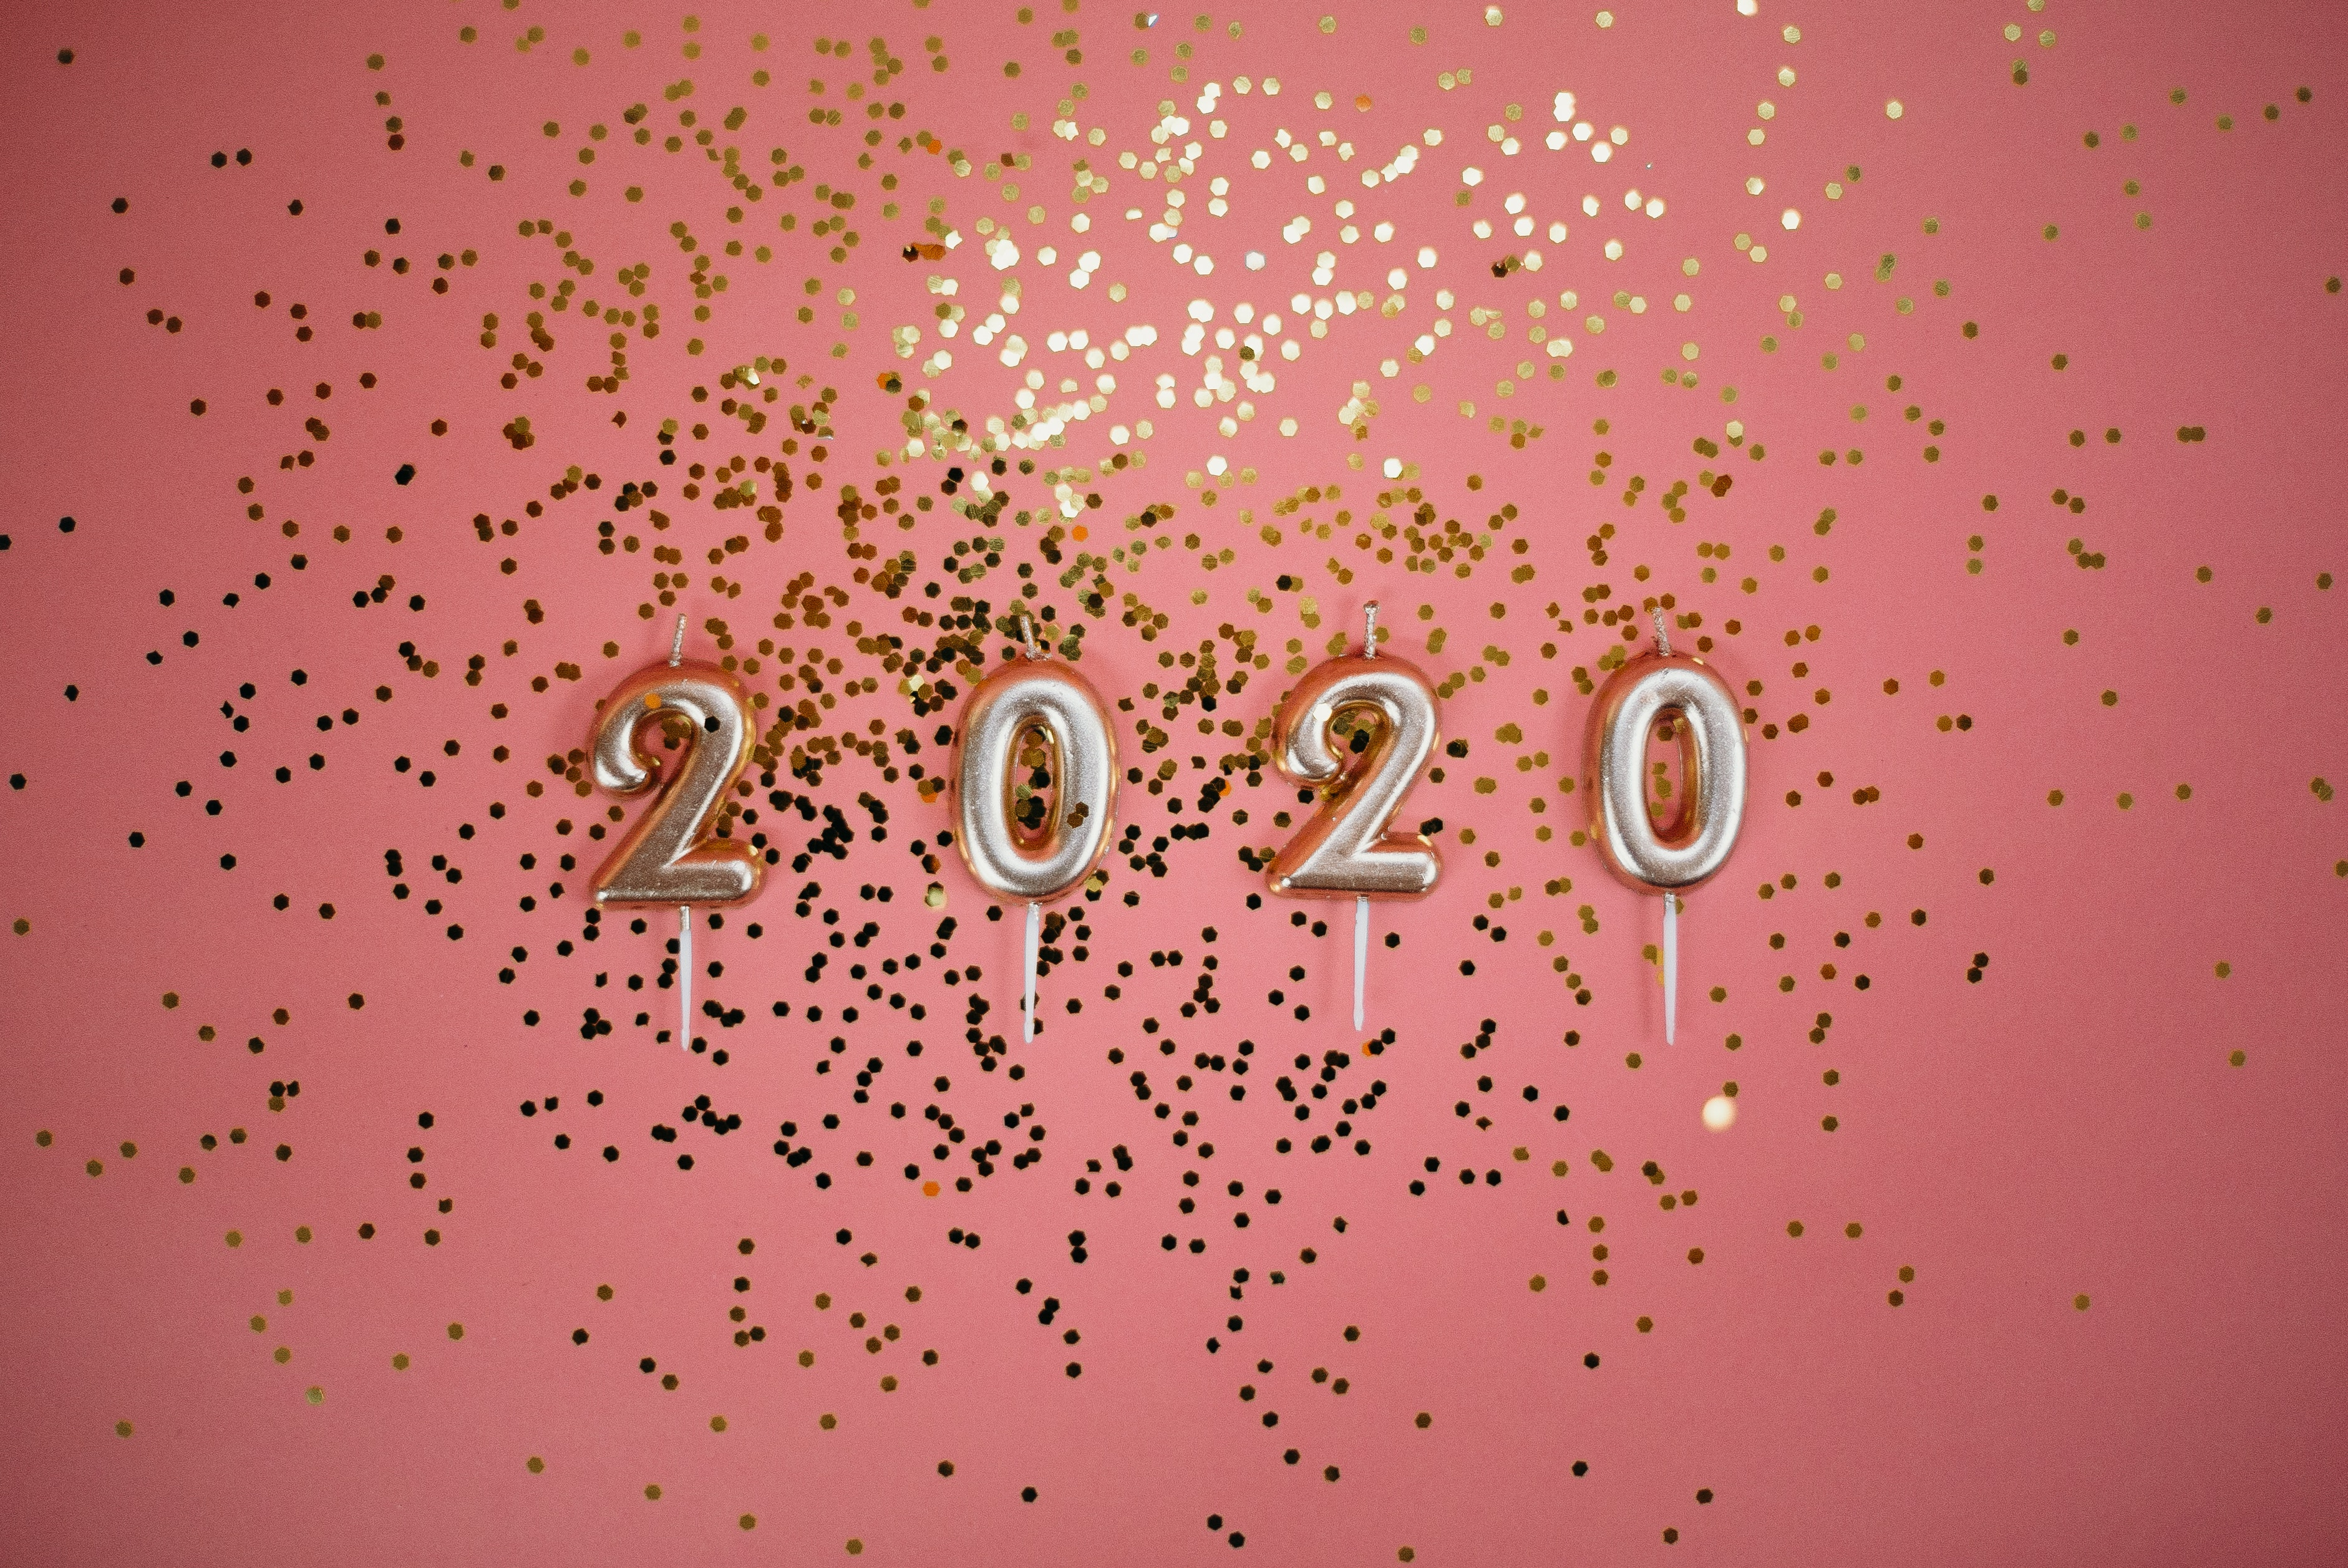 2020, happy new year!